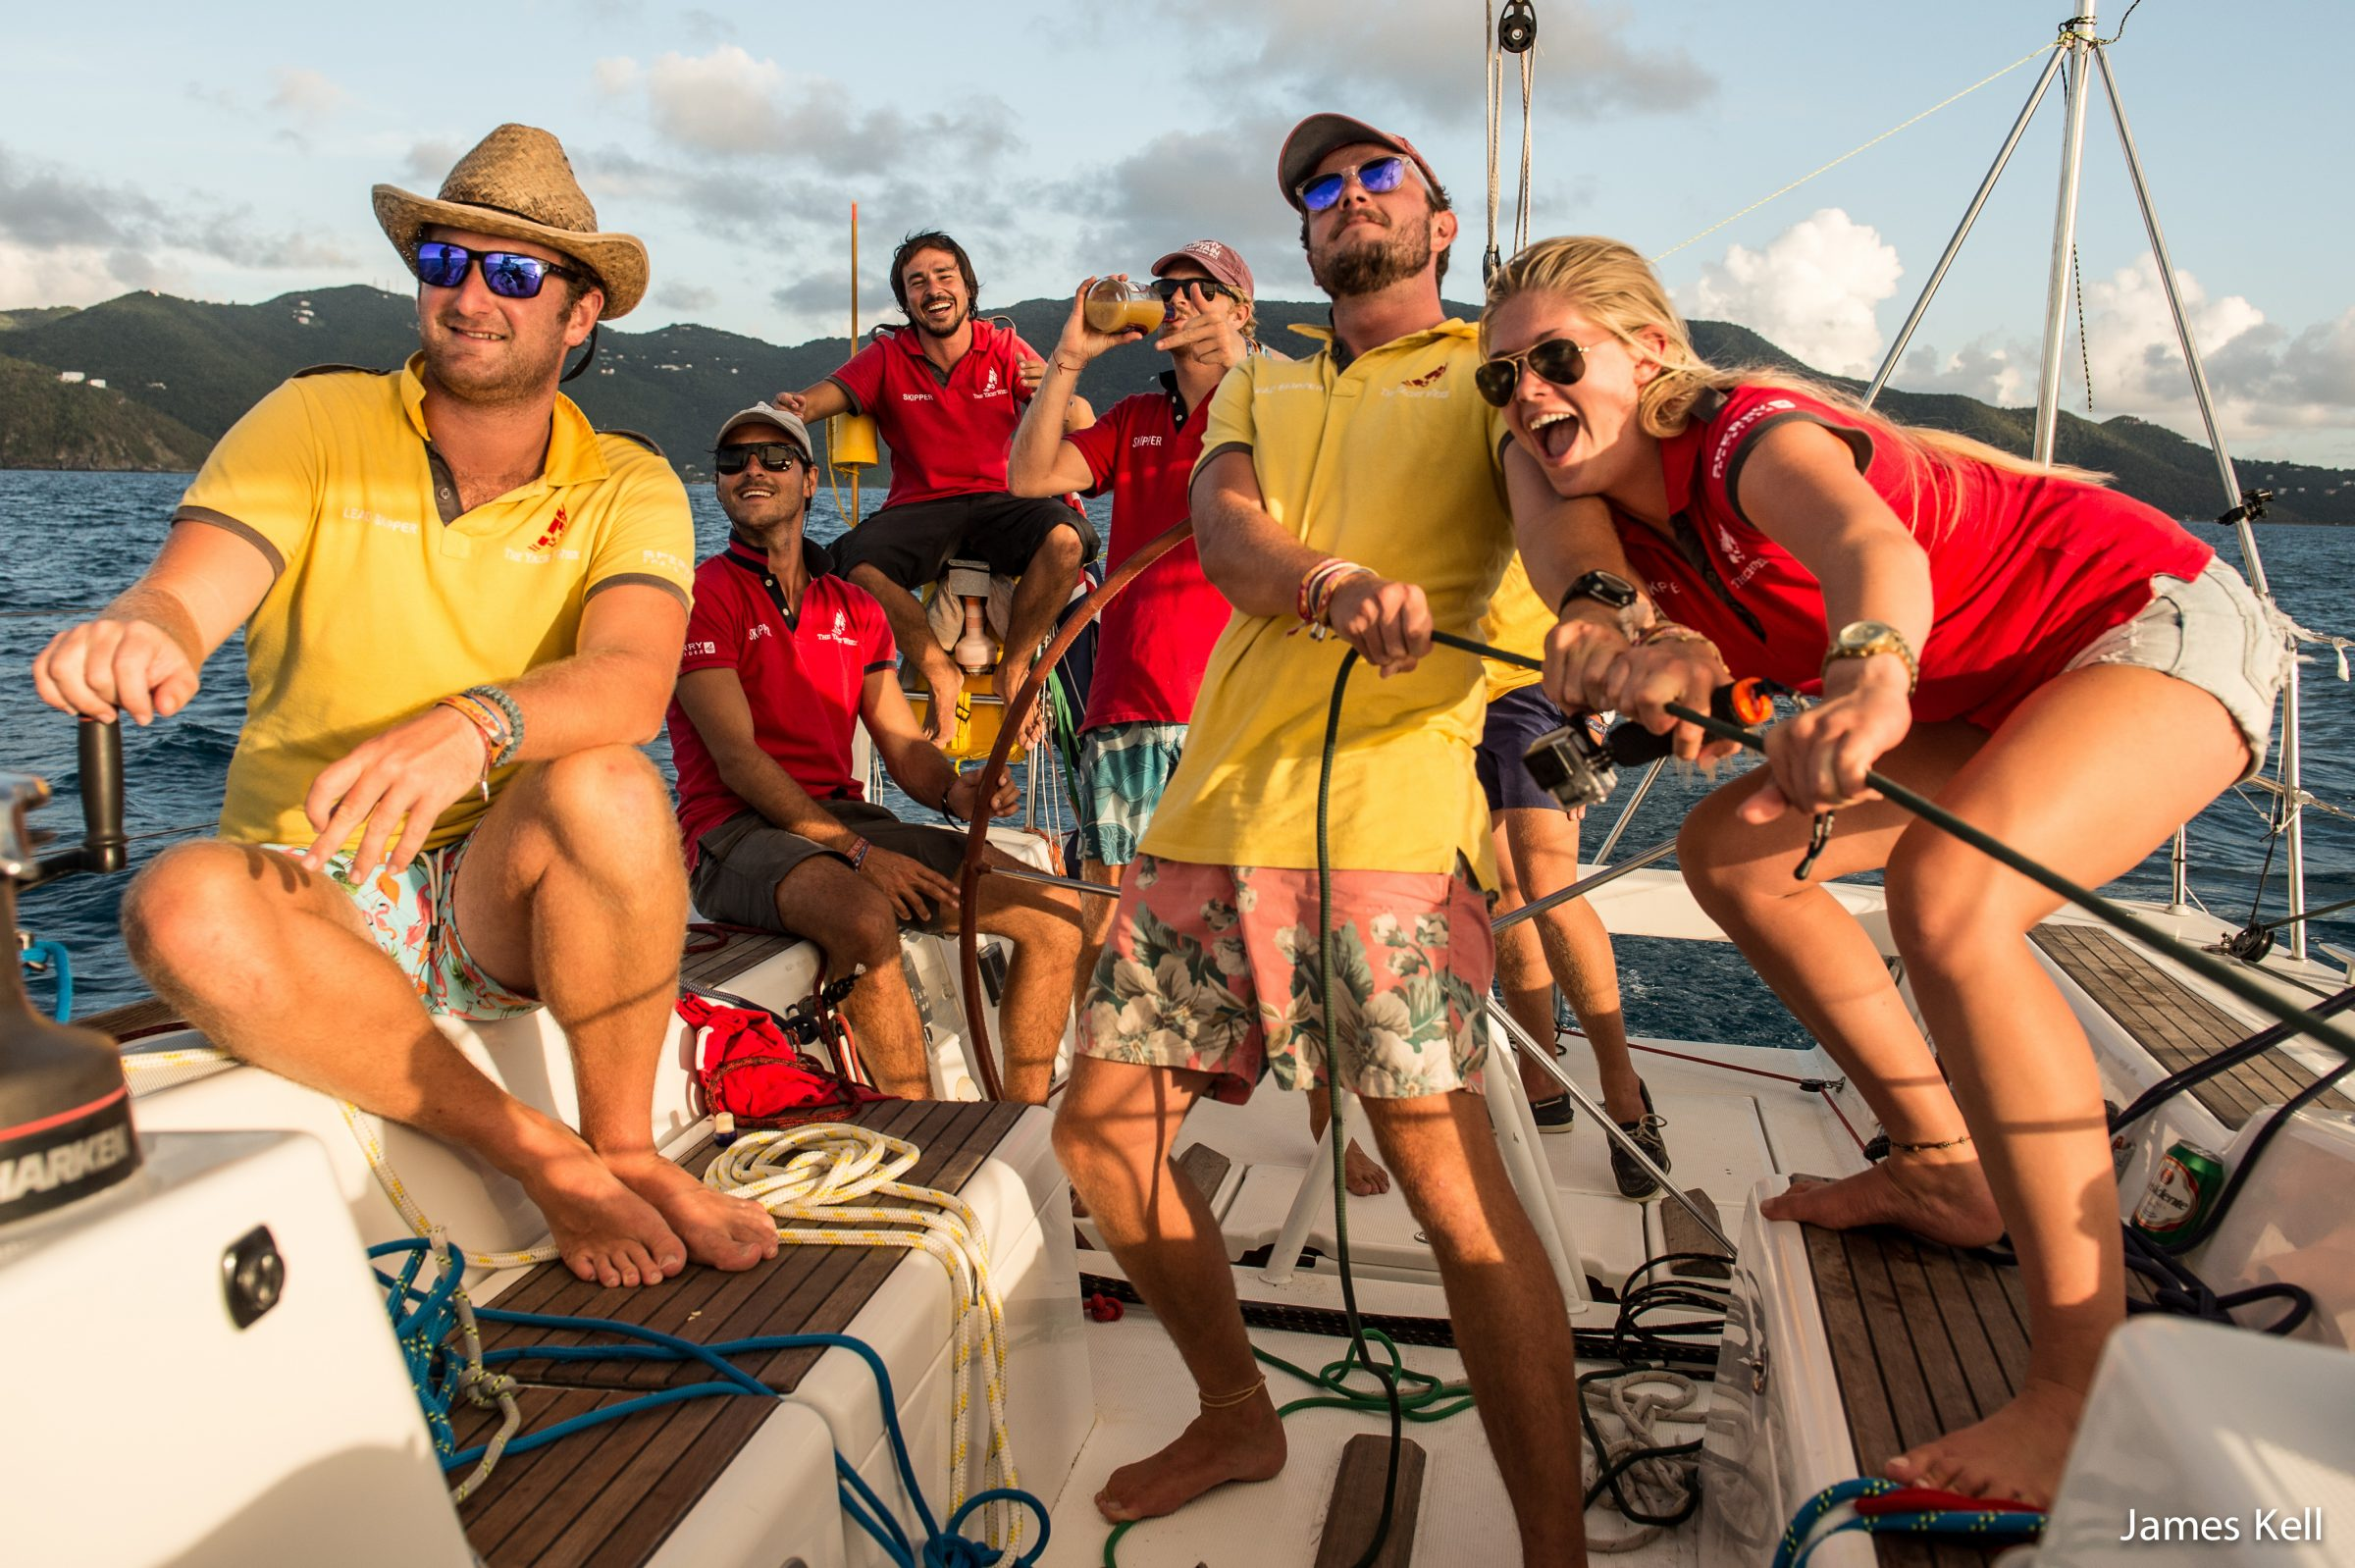 james_kell-yachtweek-5757-2400x1598.jpg